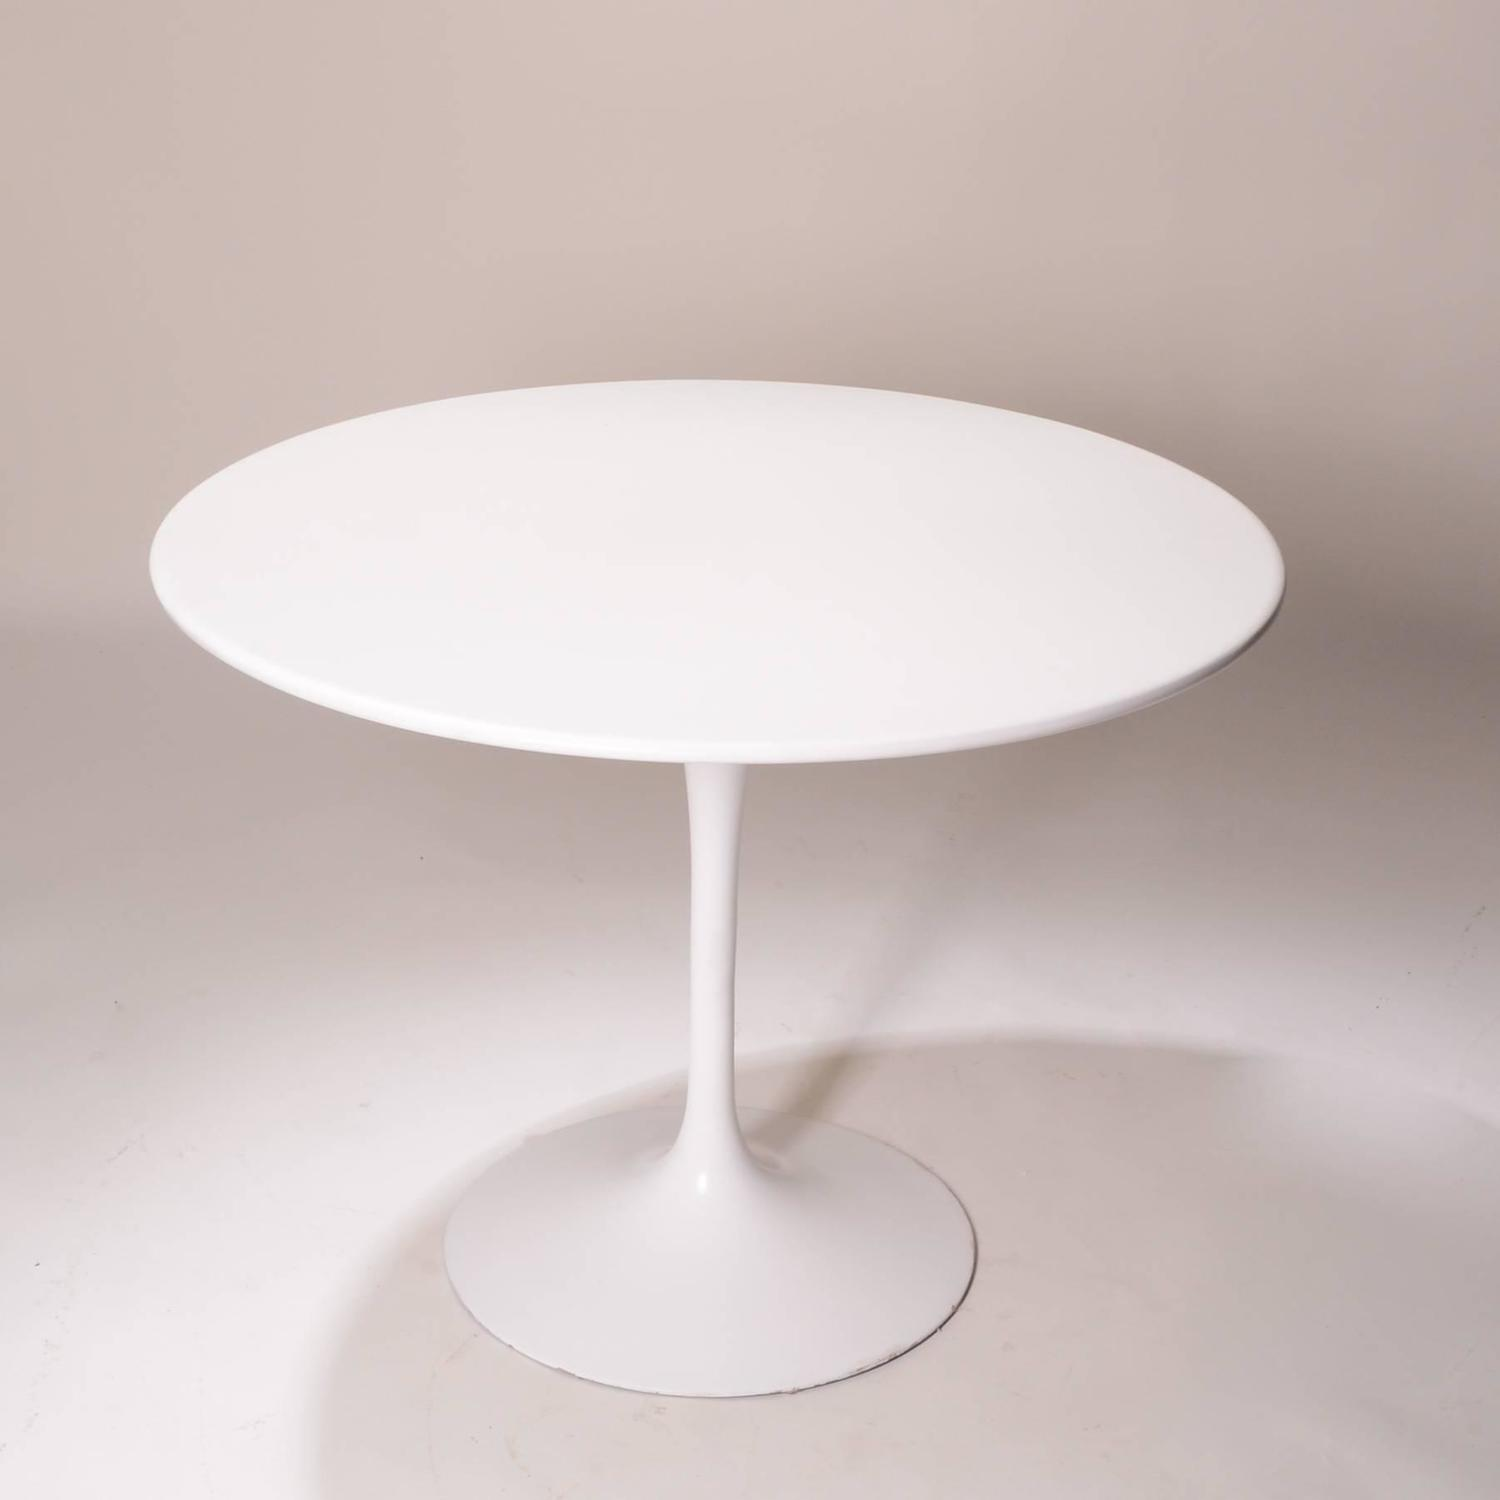 Early Production 39 Tulip 39 Table By Eero Saarinen For Knoll